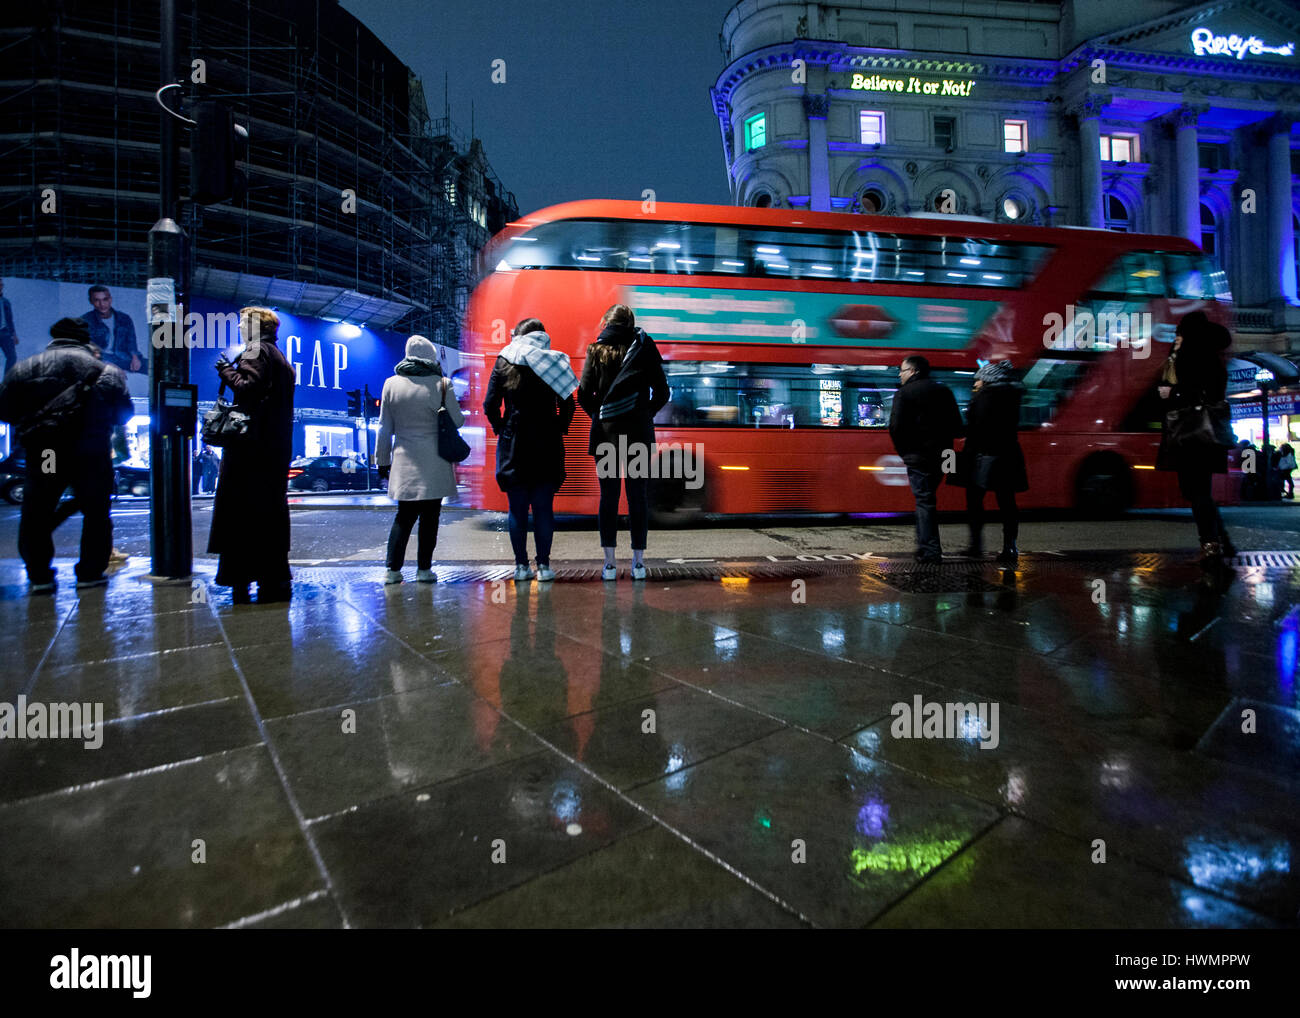 london bus at night in the rain piccadilly circus london - Stock Image